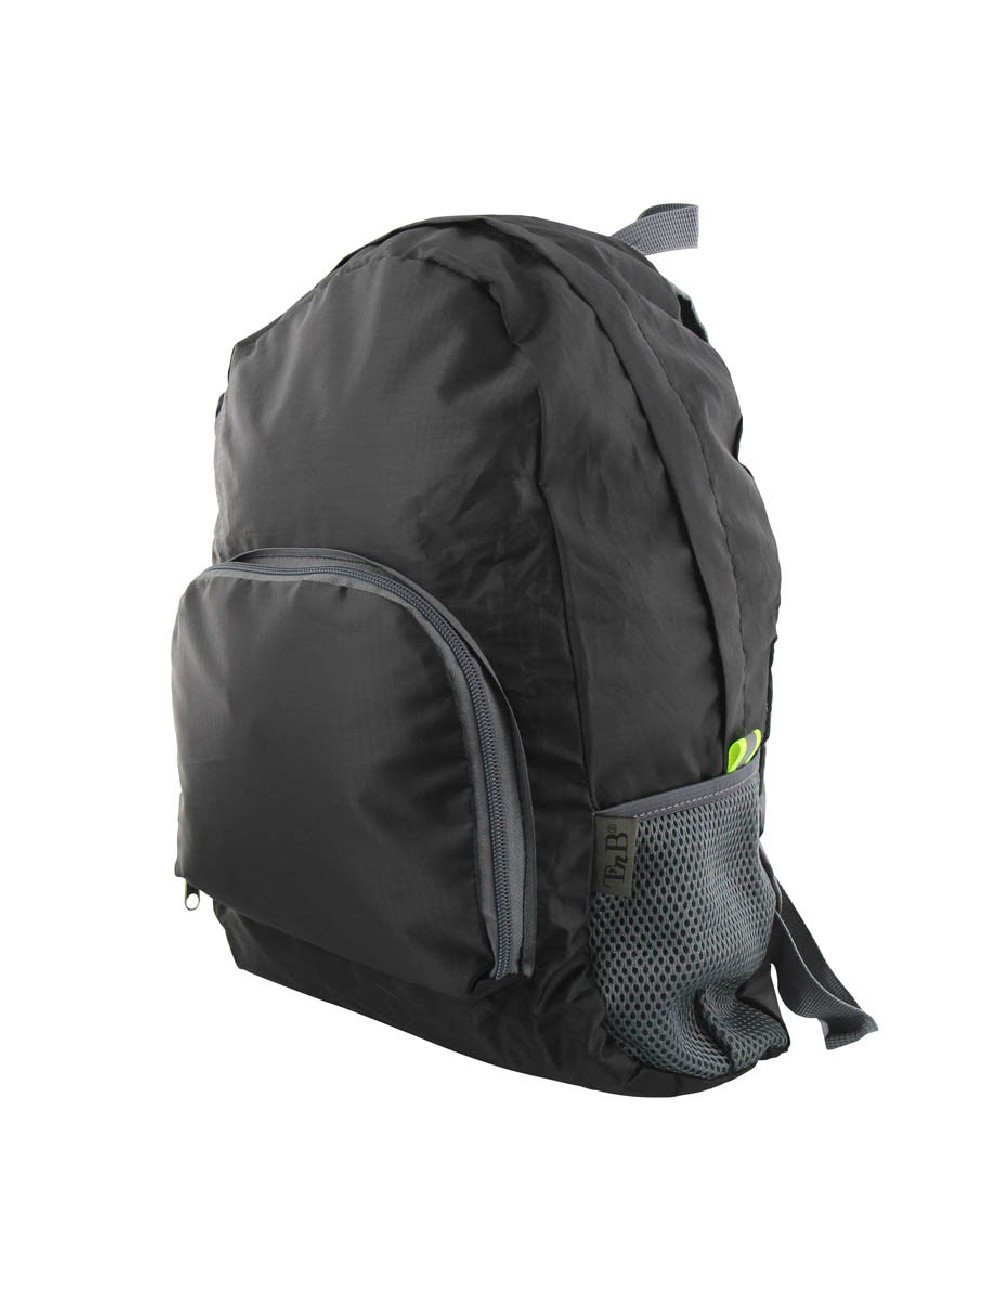 UM - FOLDABLE BACKPACK